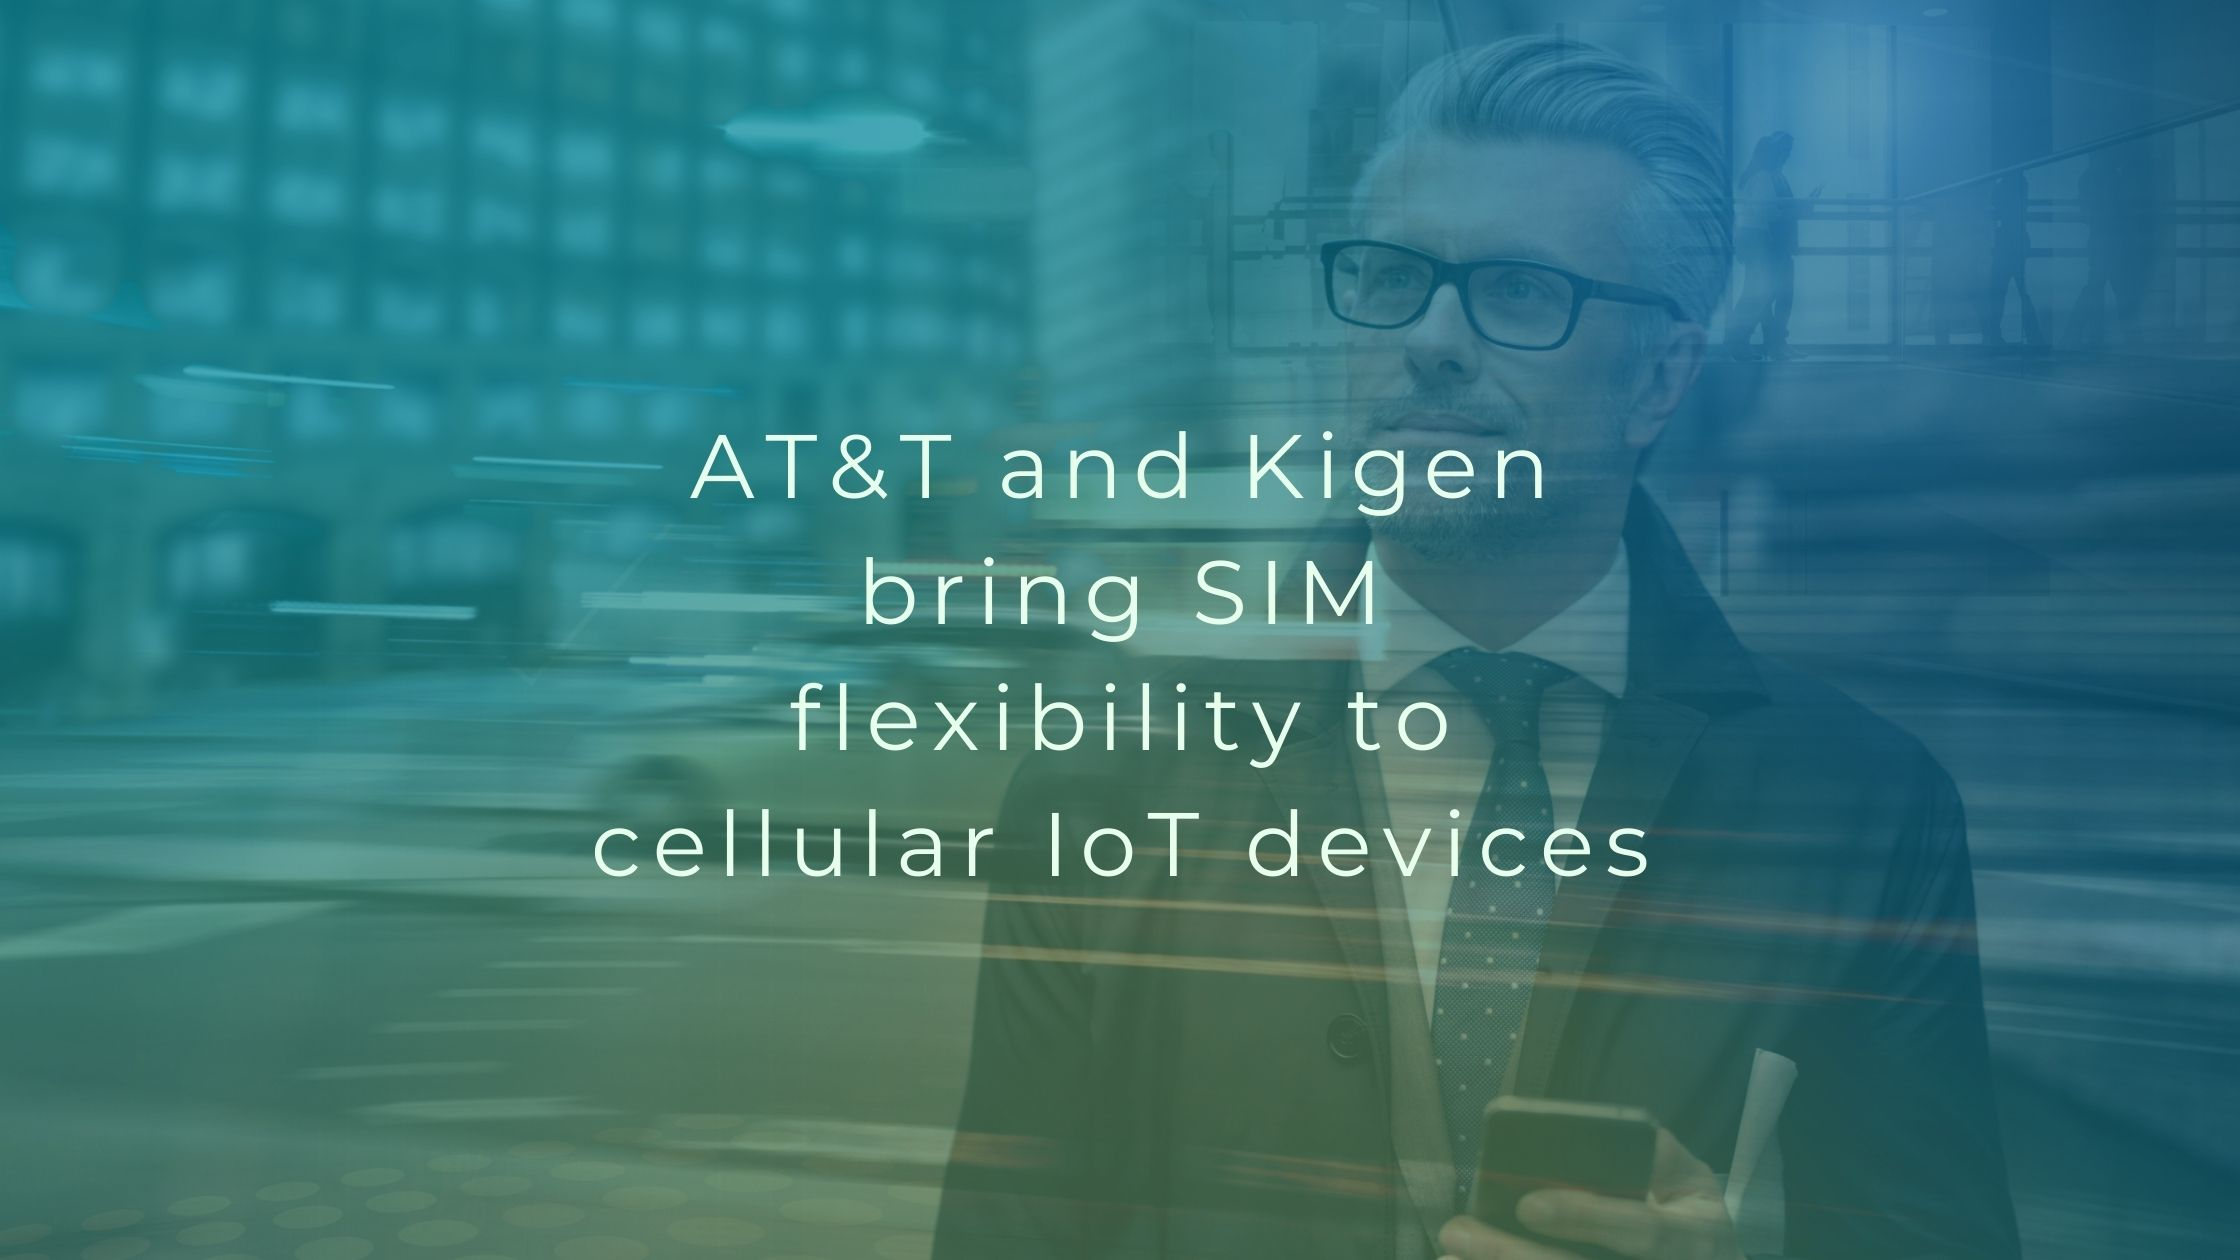 AT&T and Kigen working together will enable new entrants for cellular growth